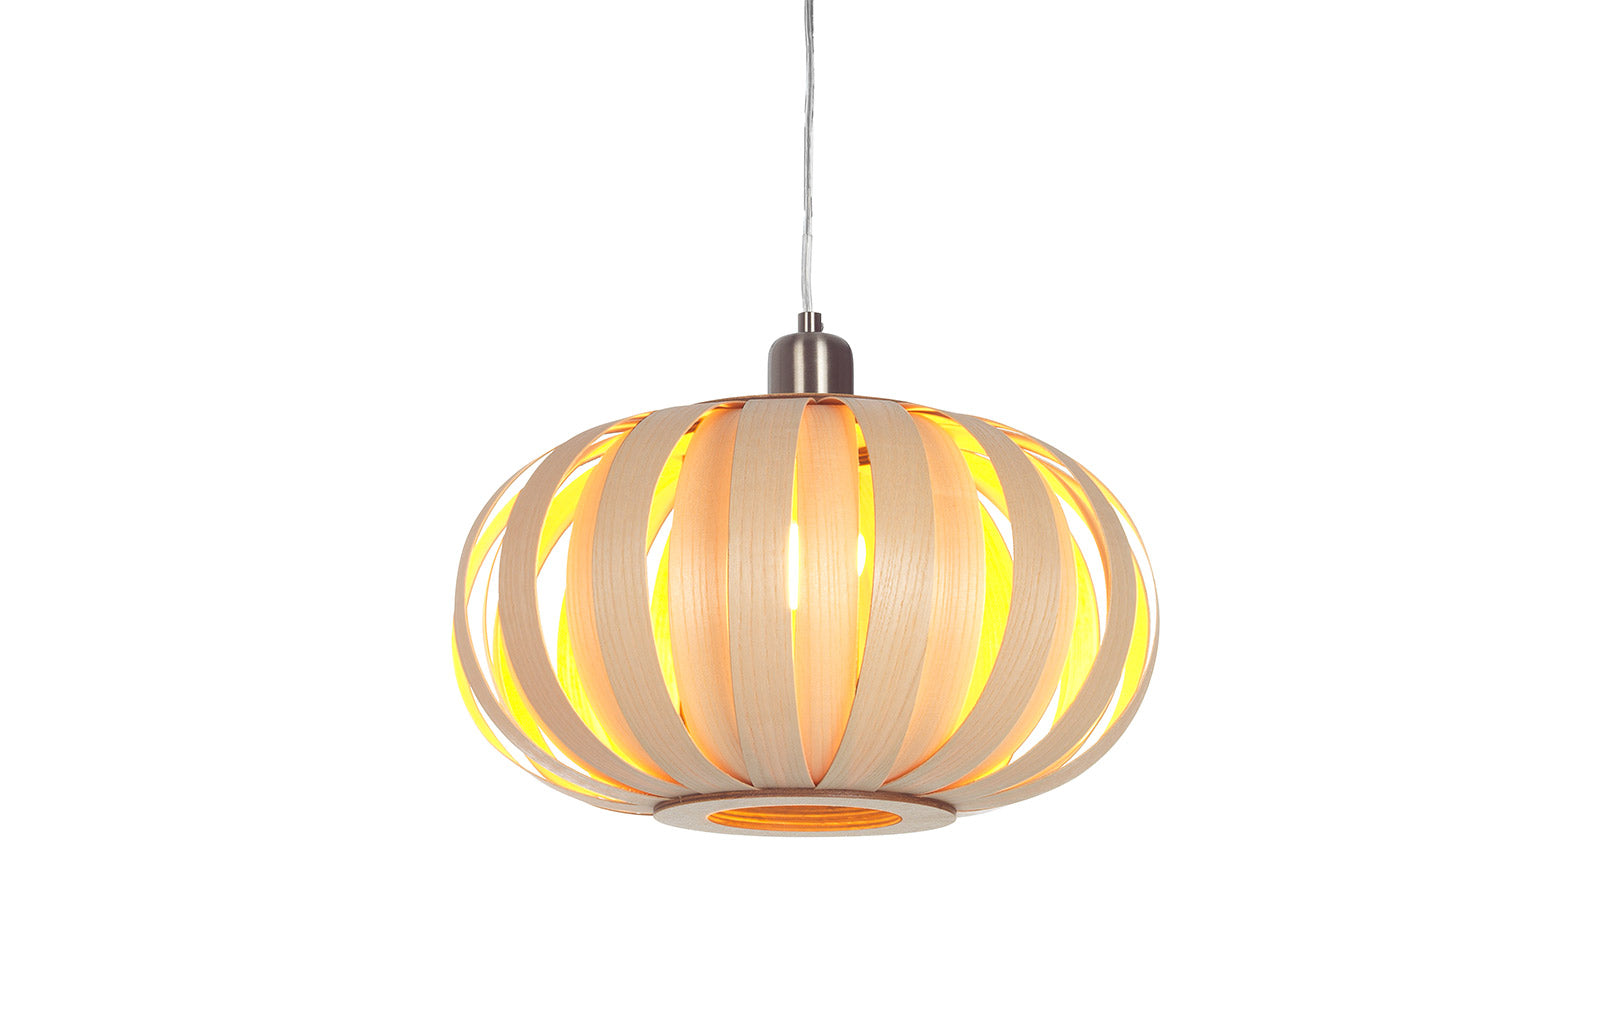 small lighting. Tom Raffield Urchin Pendant Small Light In Ash Lighting S